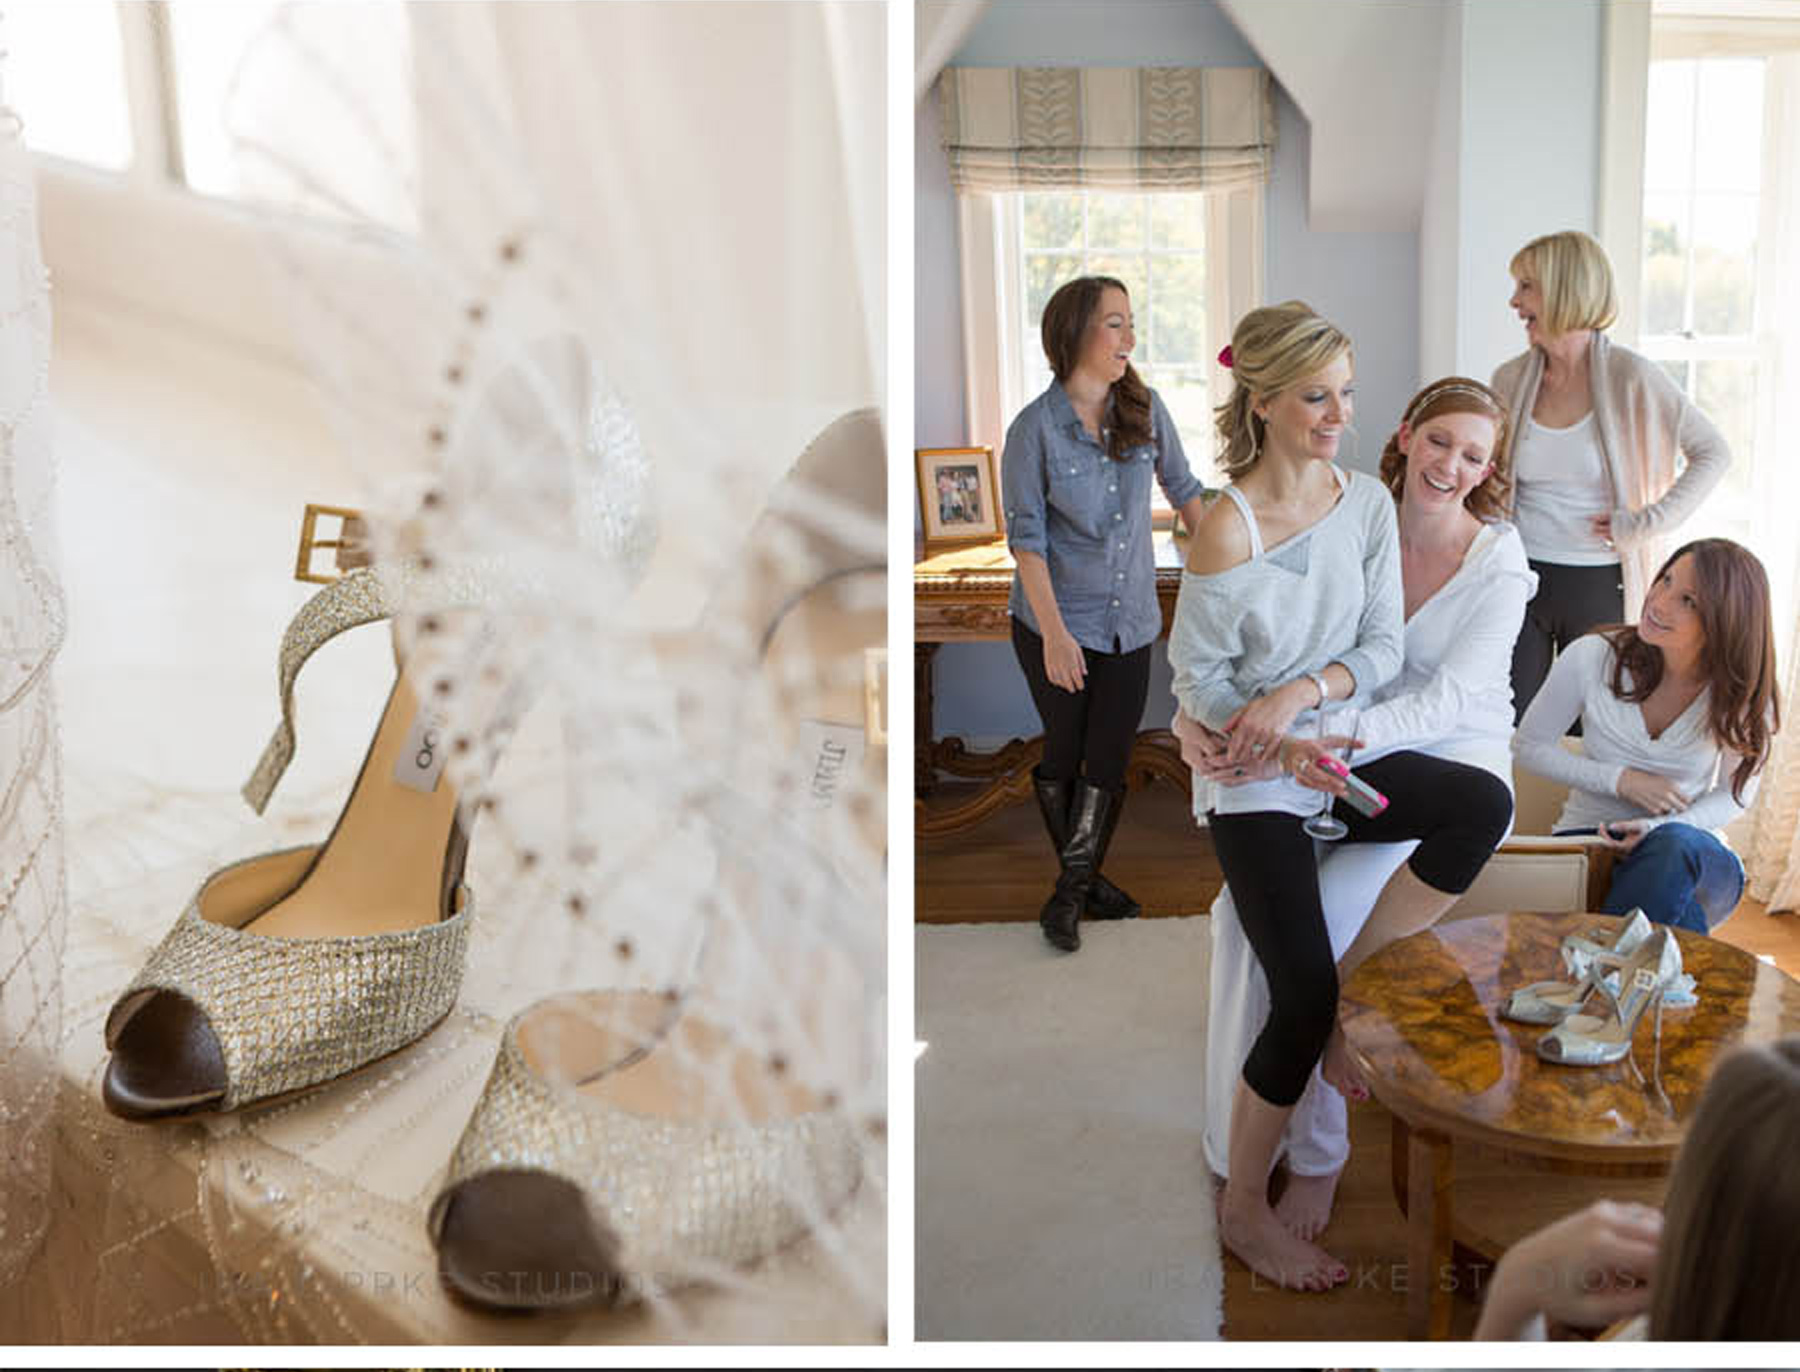 Our Muse - Festive Fall Wedding - Be inspired by Laura and Joseph's festive fall wedding - wedding